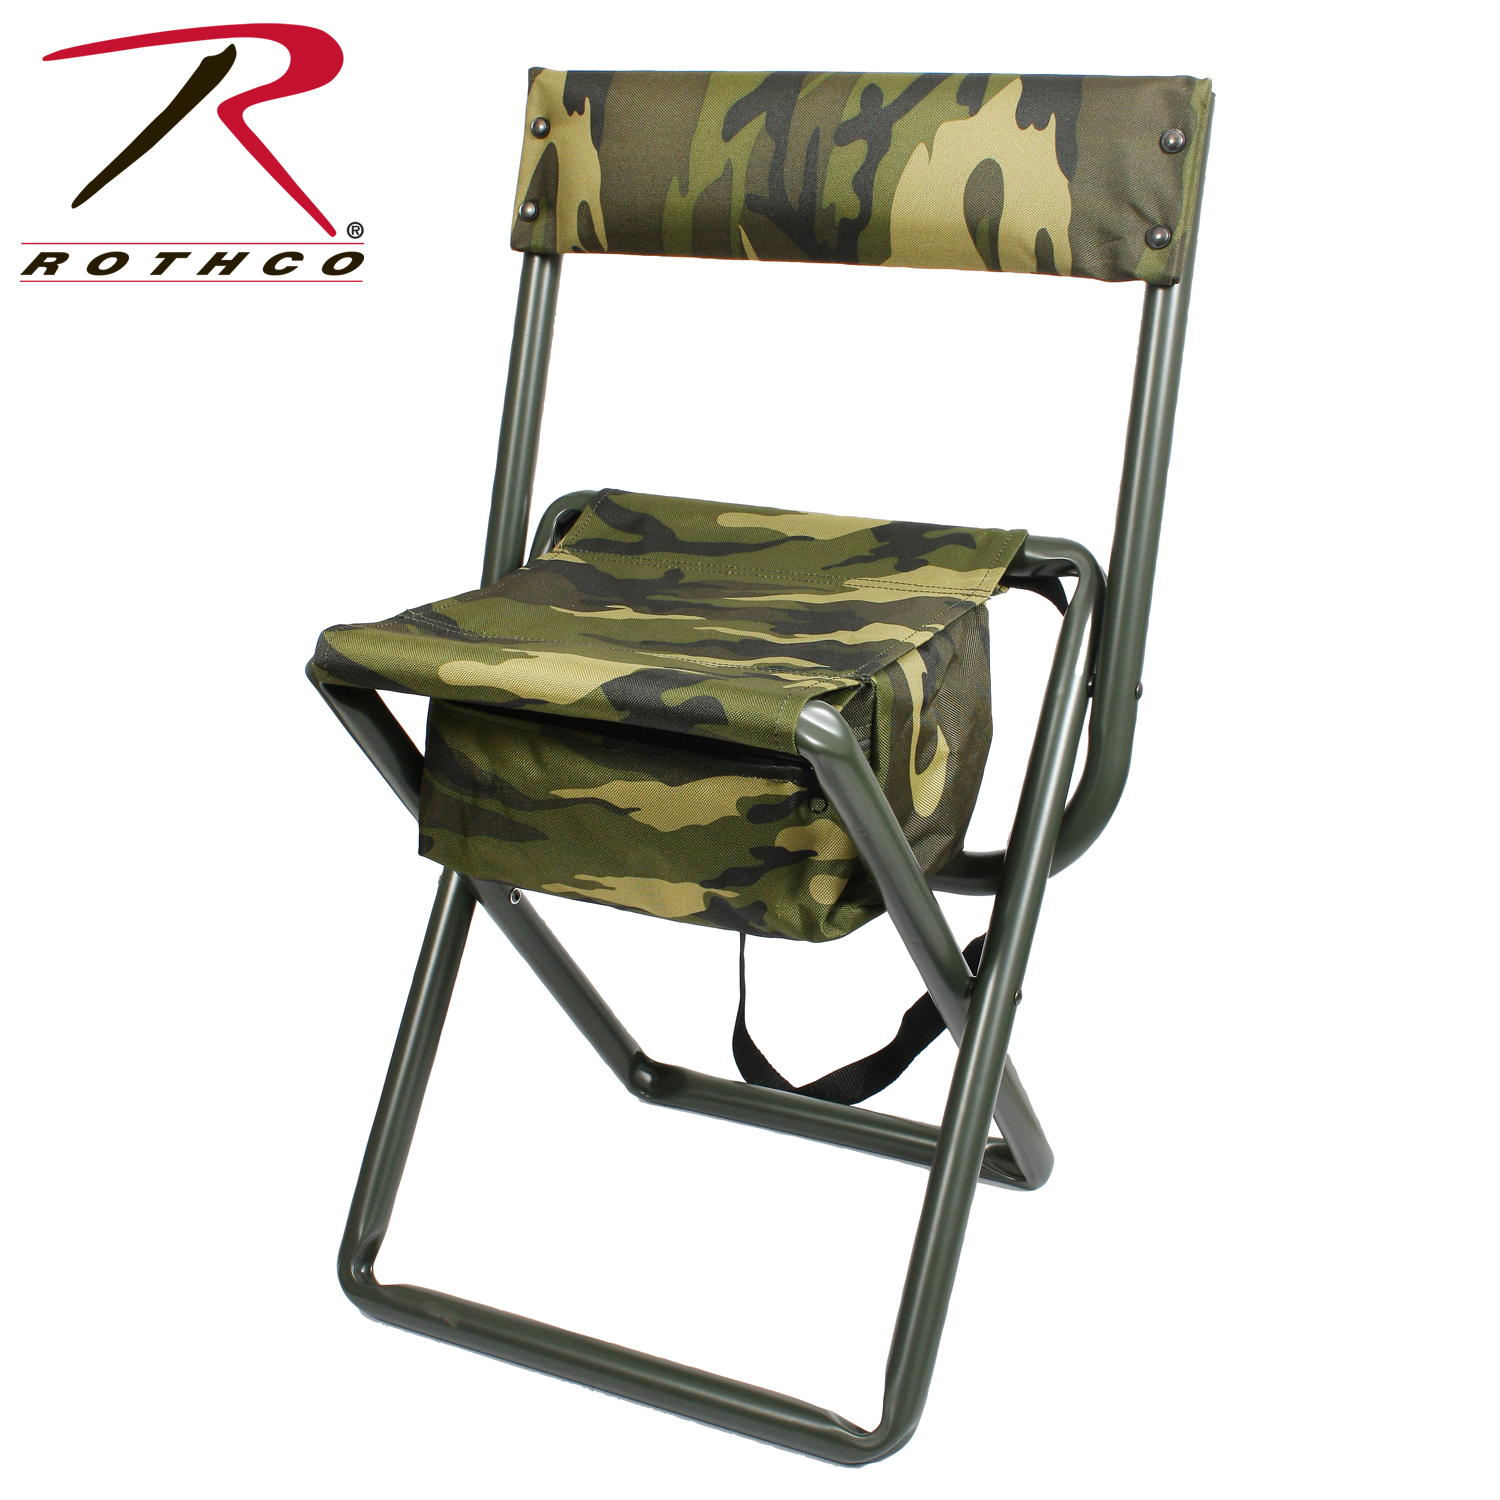 Camo Folding Chair Rothco 4578 4378 Deluxe Camo Stool W Pouch Back Ebay